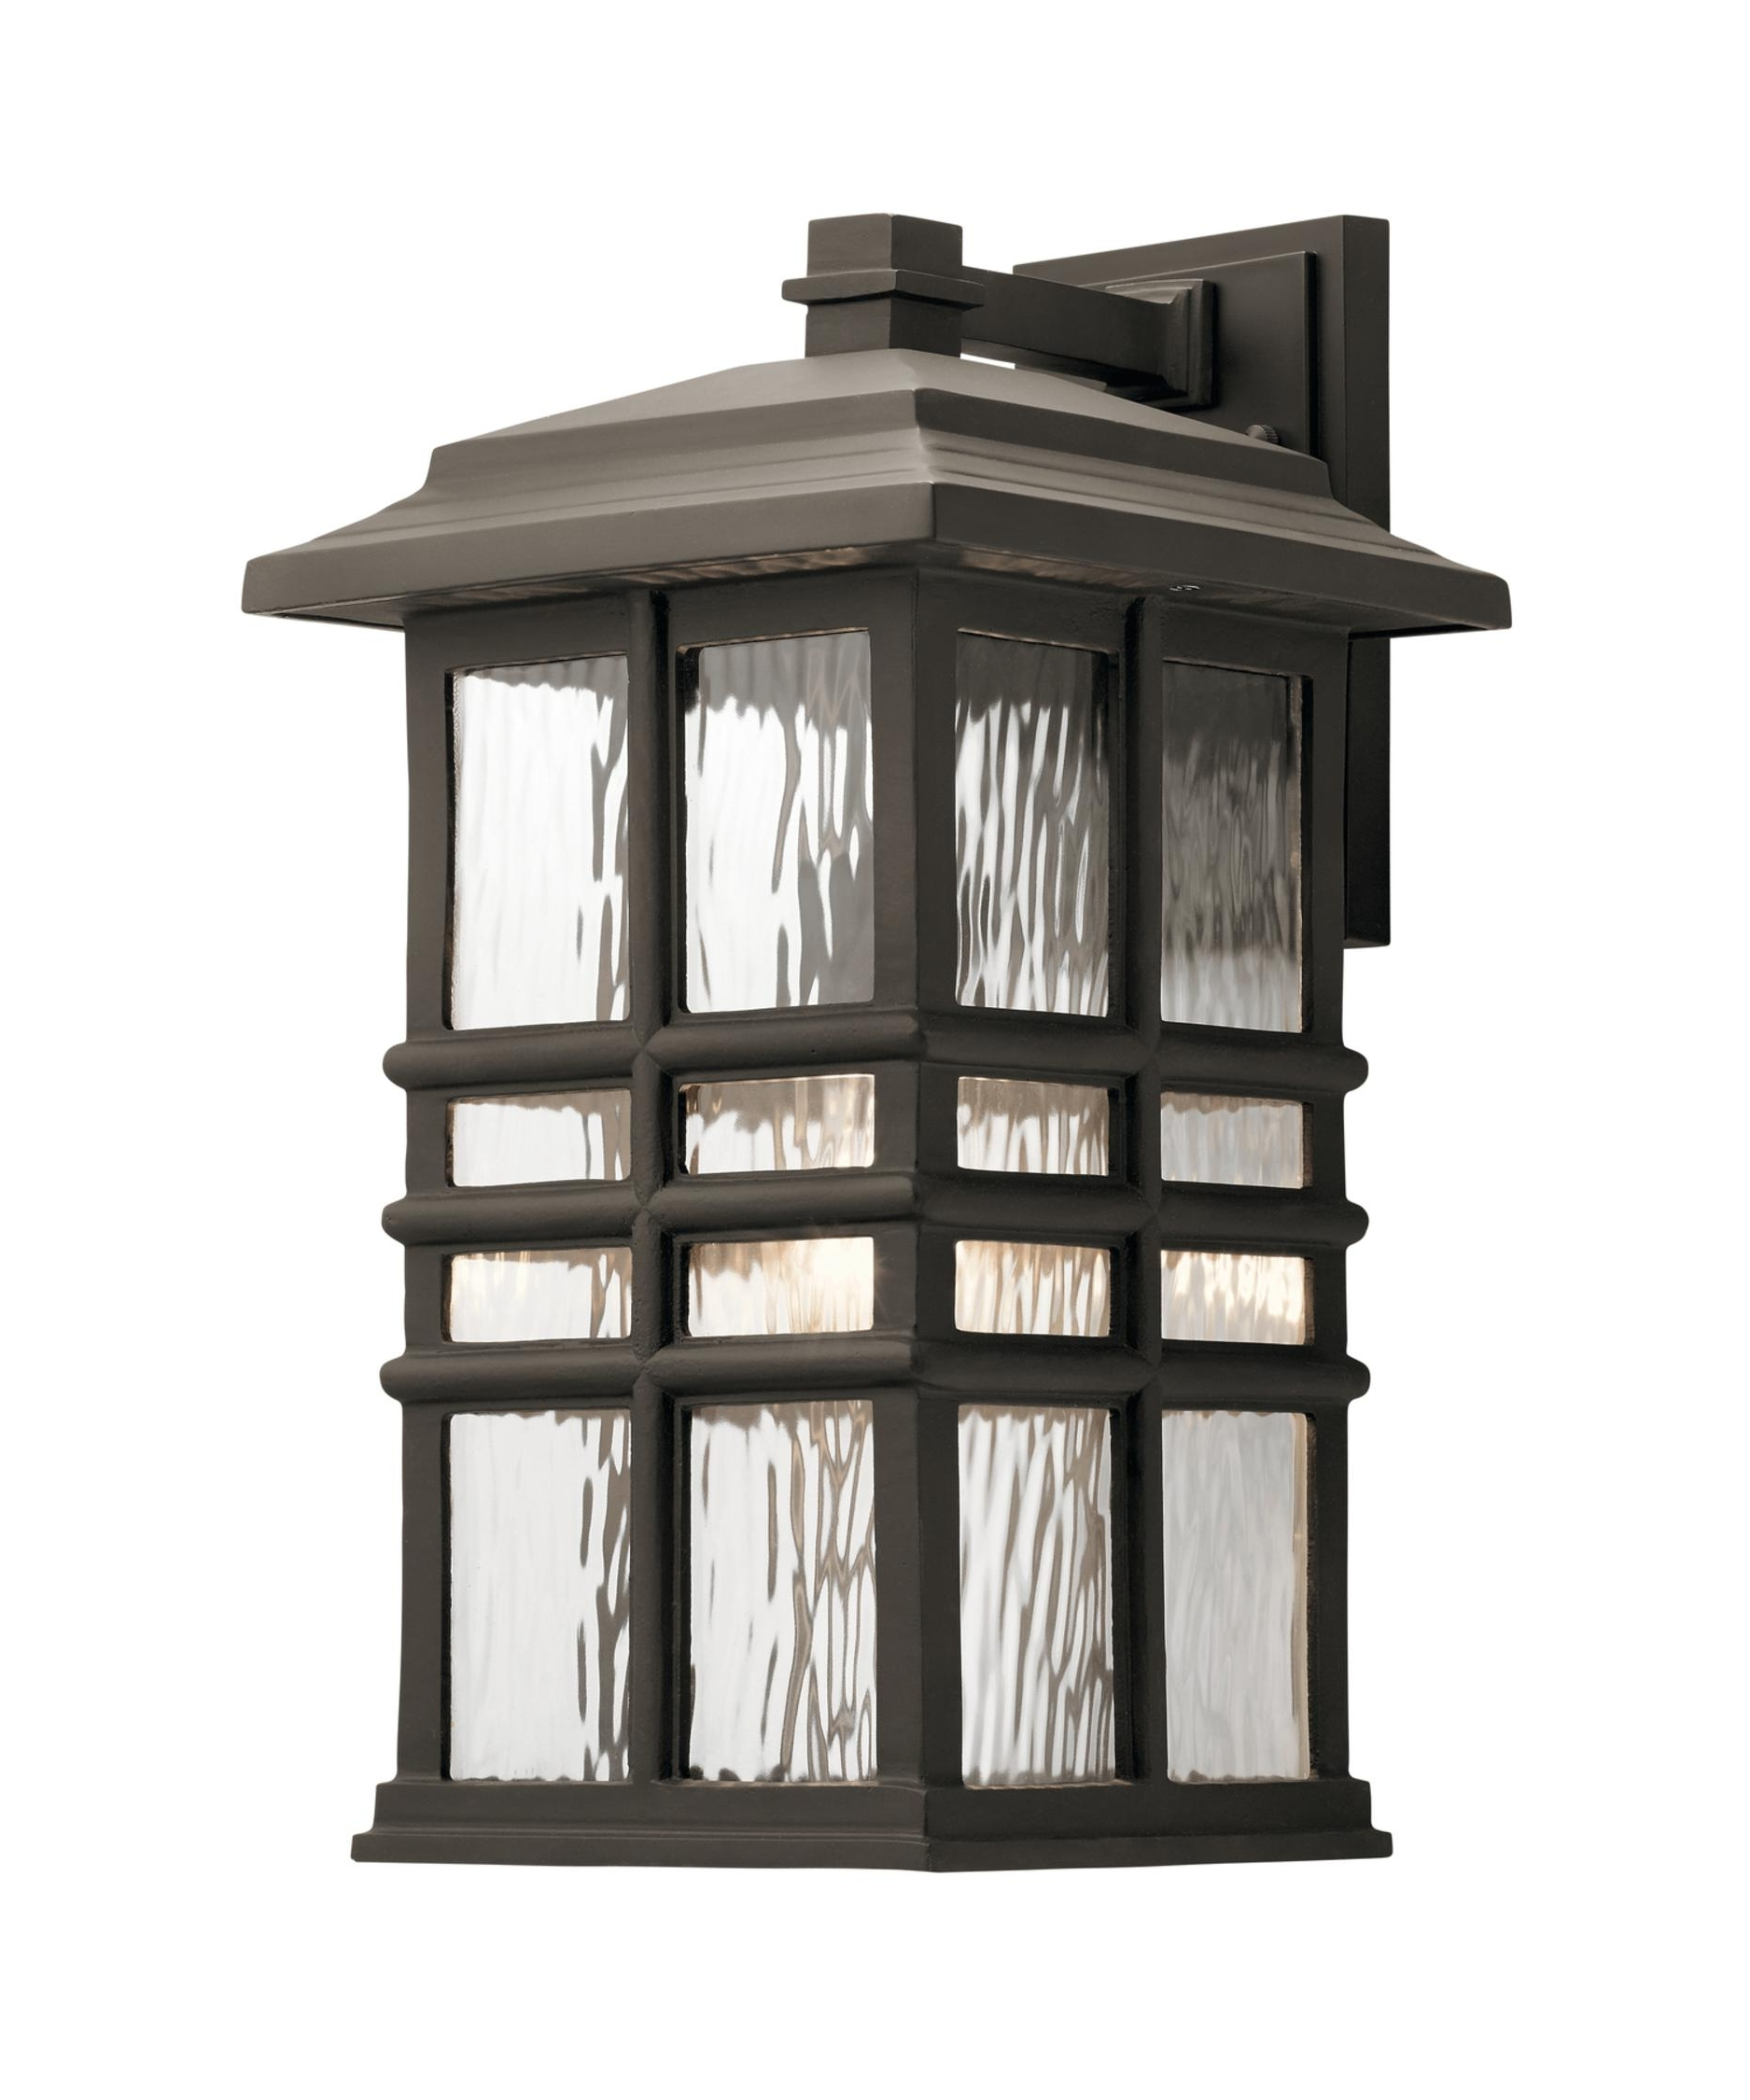 Kichler 49831 Beacon Square 10 Inch Wide 1 Light Outdoor Wall Light Pertaining To Recent Beacon Outdoor Wall Lighting (View 11 of 20)